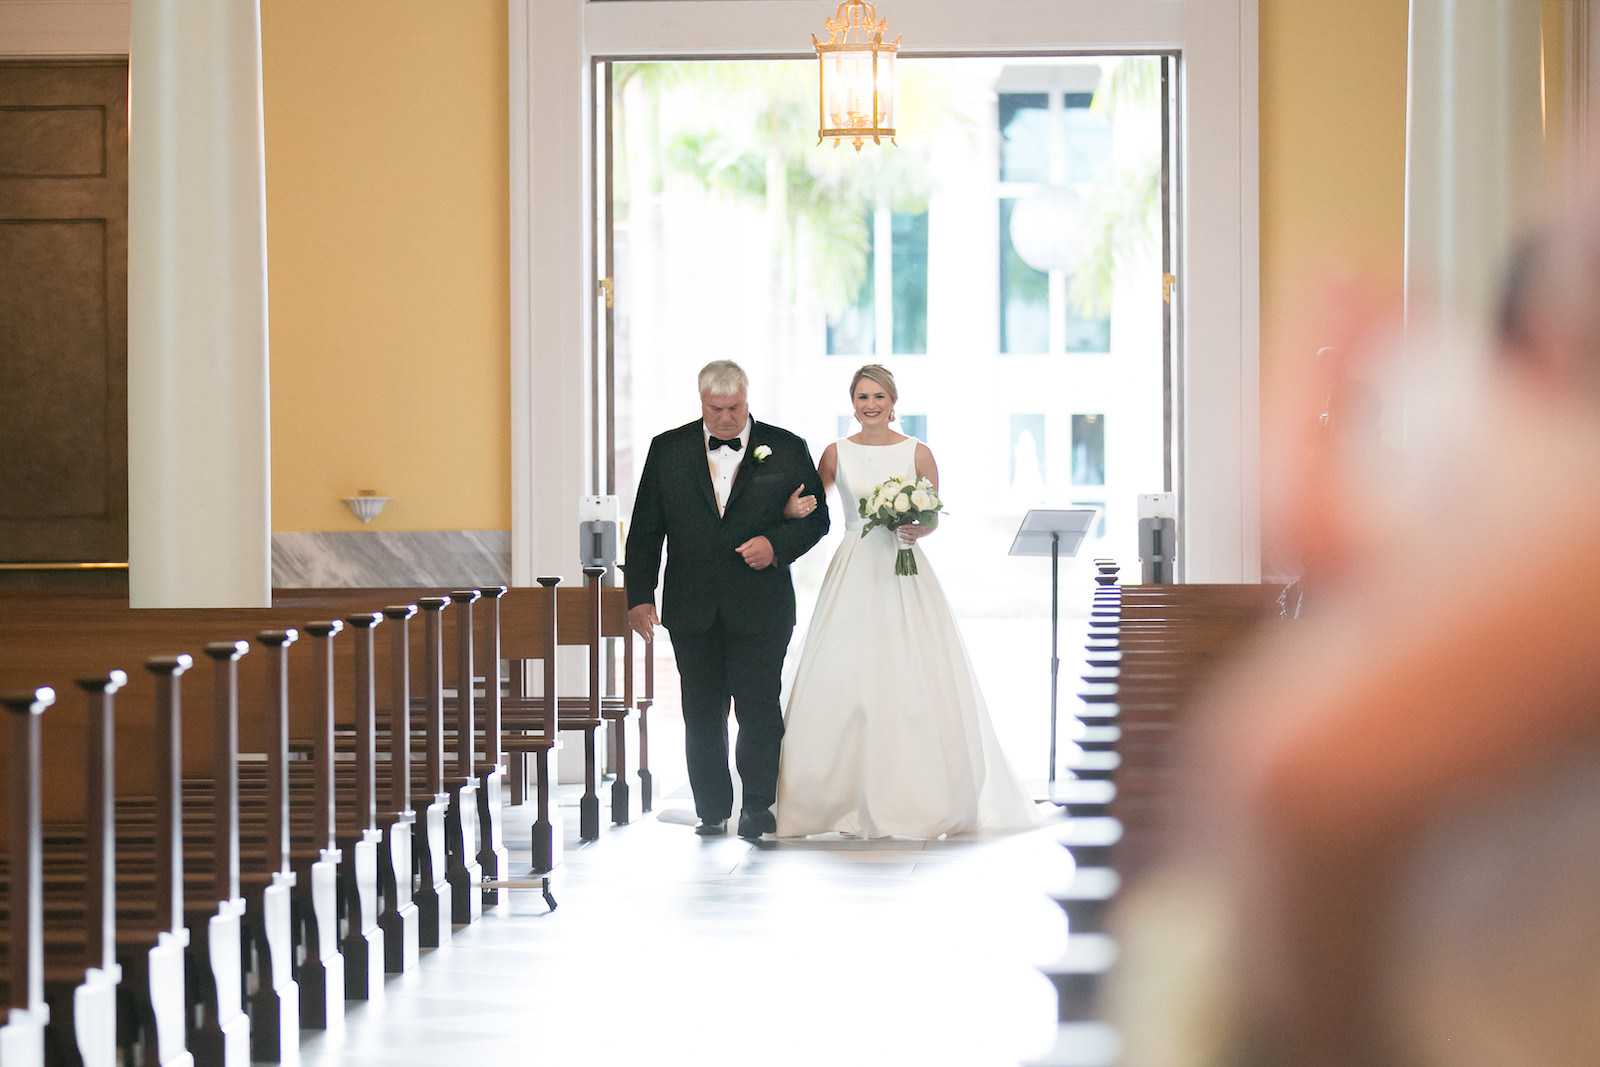 Bride Walking down Aisle with Father during Traditional Church Wedding Ceremony in Tampa | Bateau Neck Mikado Satin Martina Liana Simple Elegant Wedding Dress with Buttons Down Back | Neutral White Rose and Greenery Bouquet